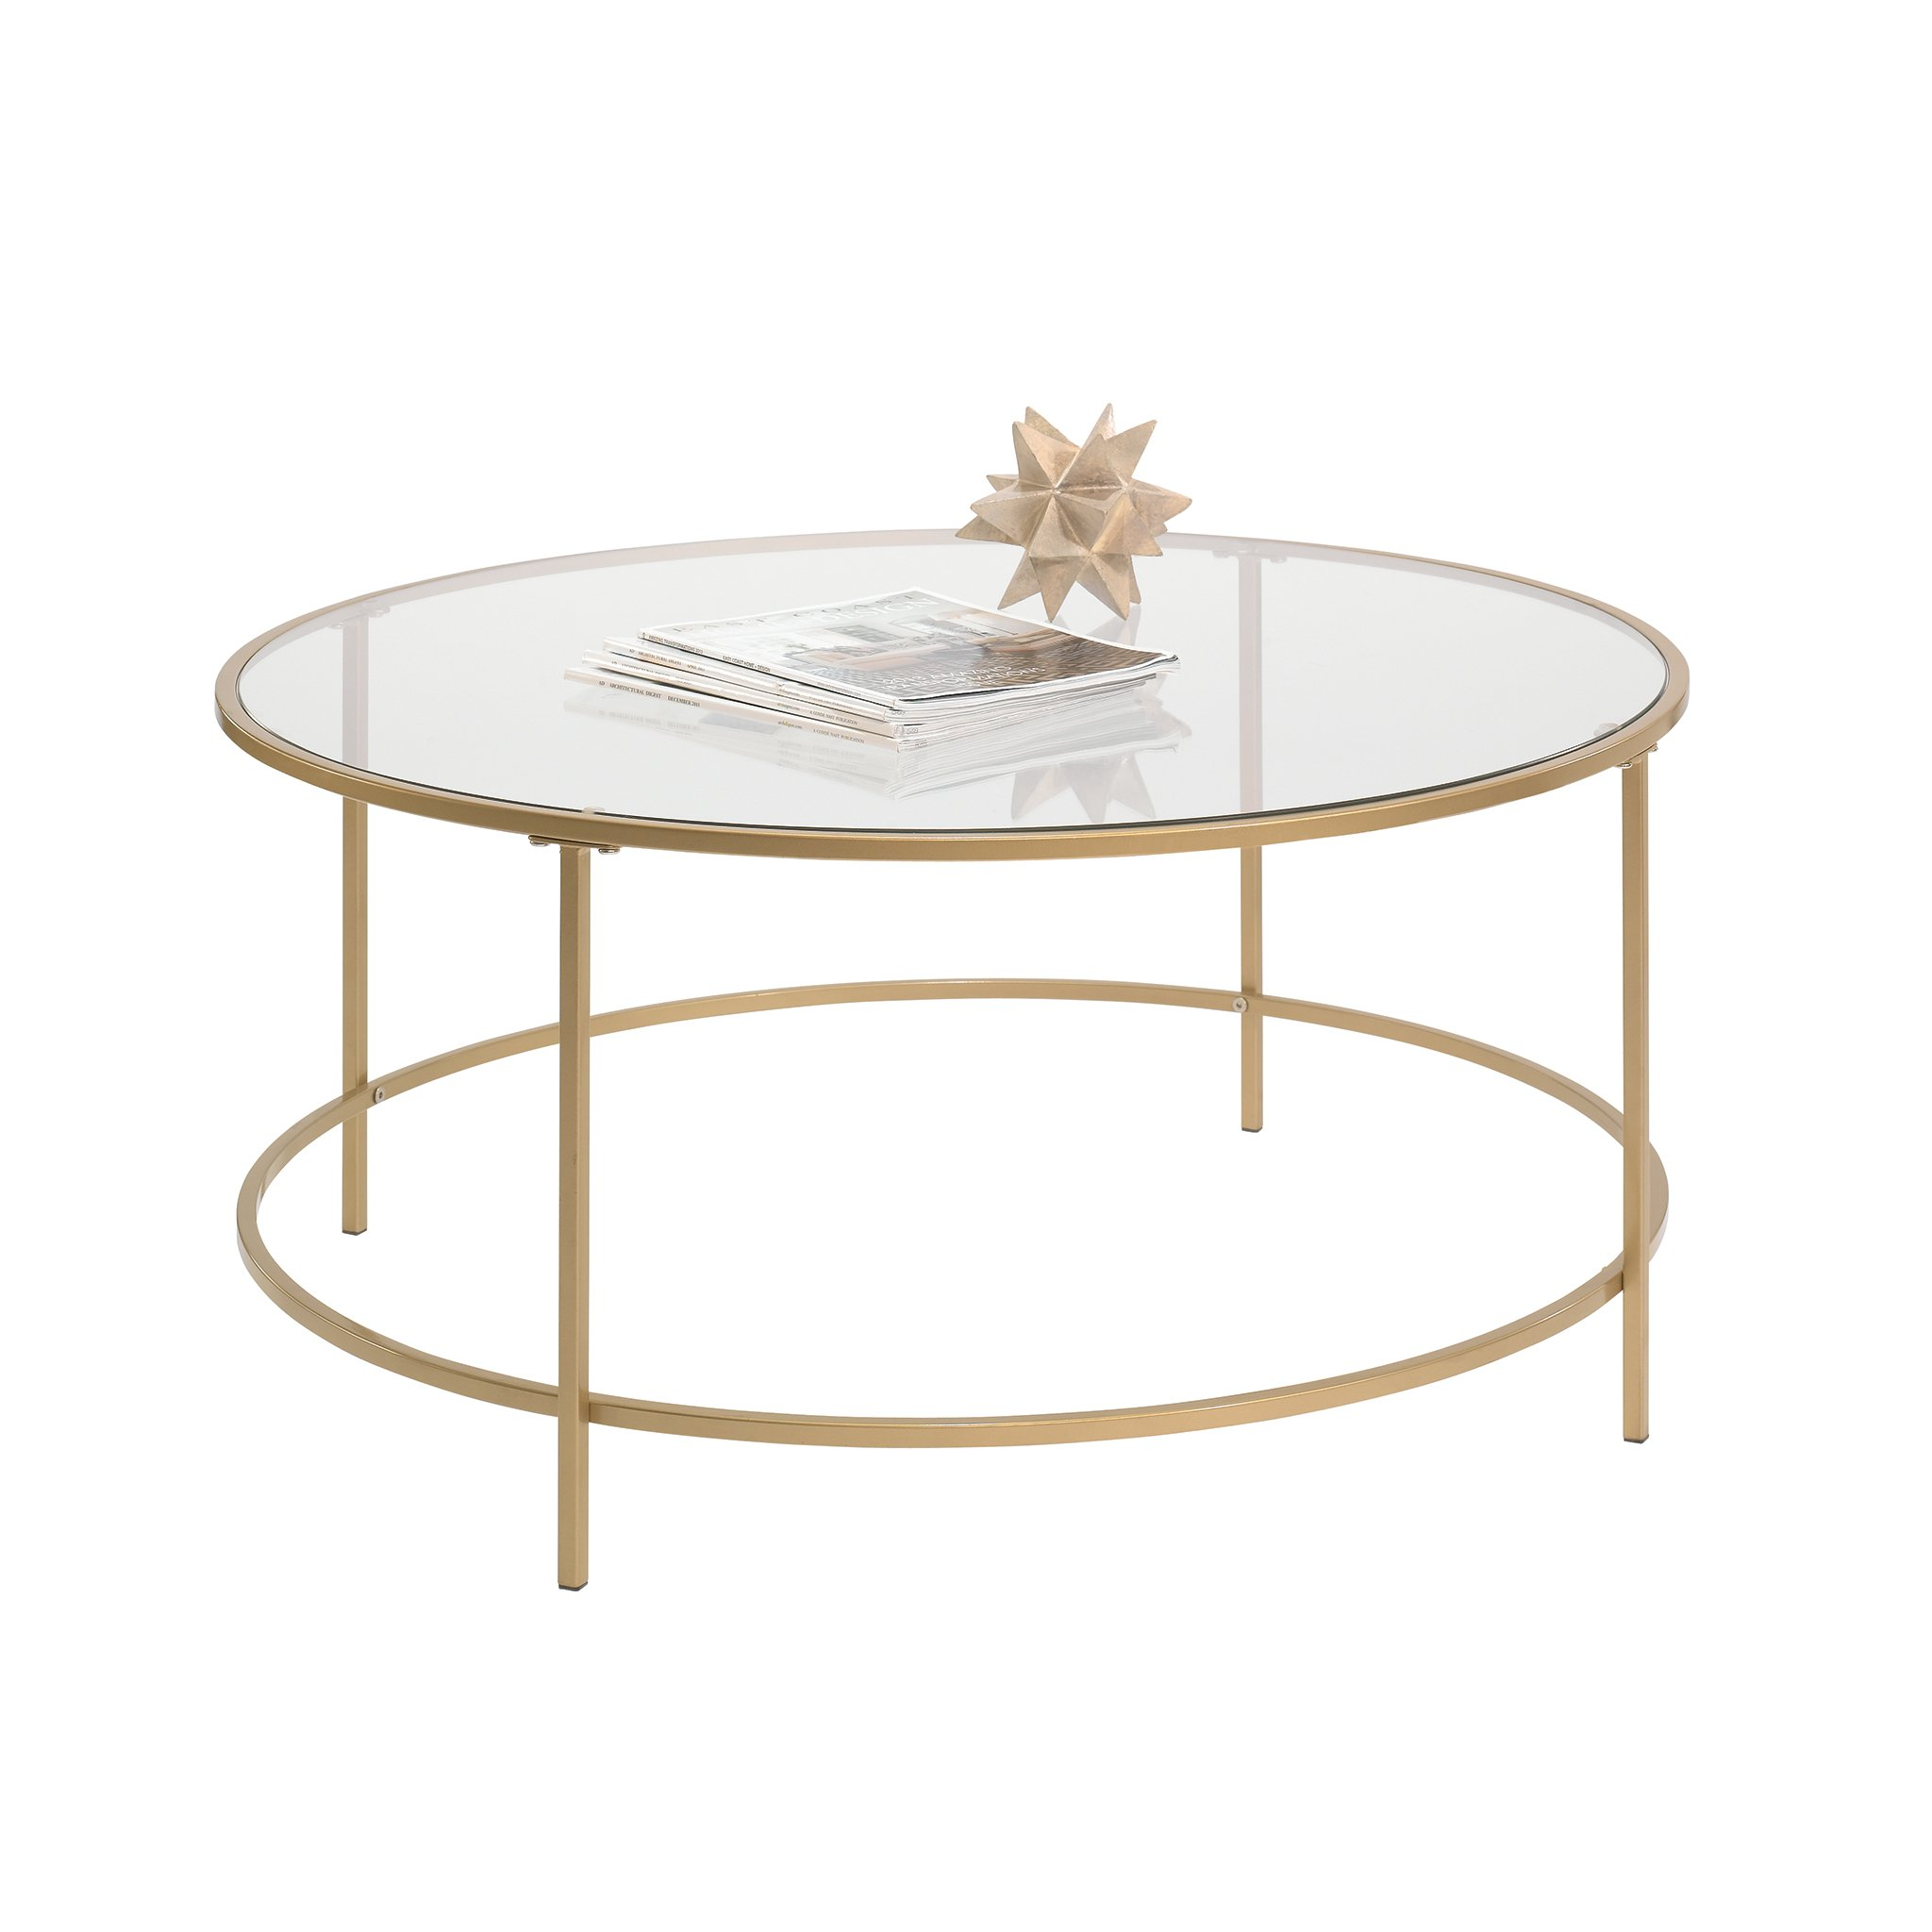 Sauder 417830 Int Lux Coffee Table Round, Glass / Gold Finish by Sauder